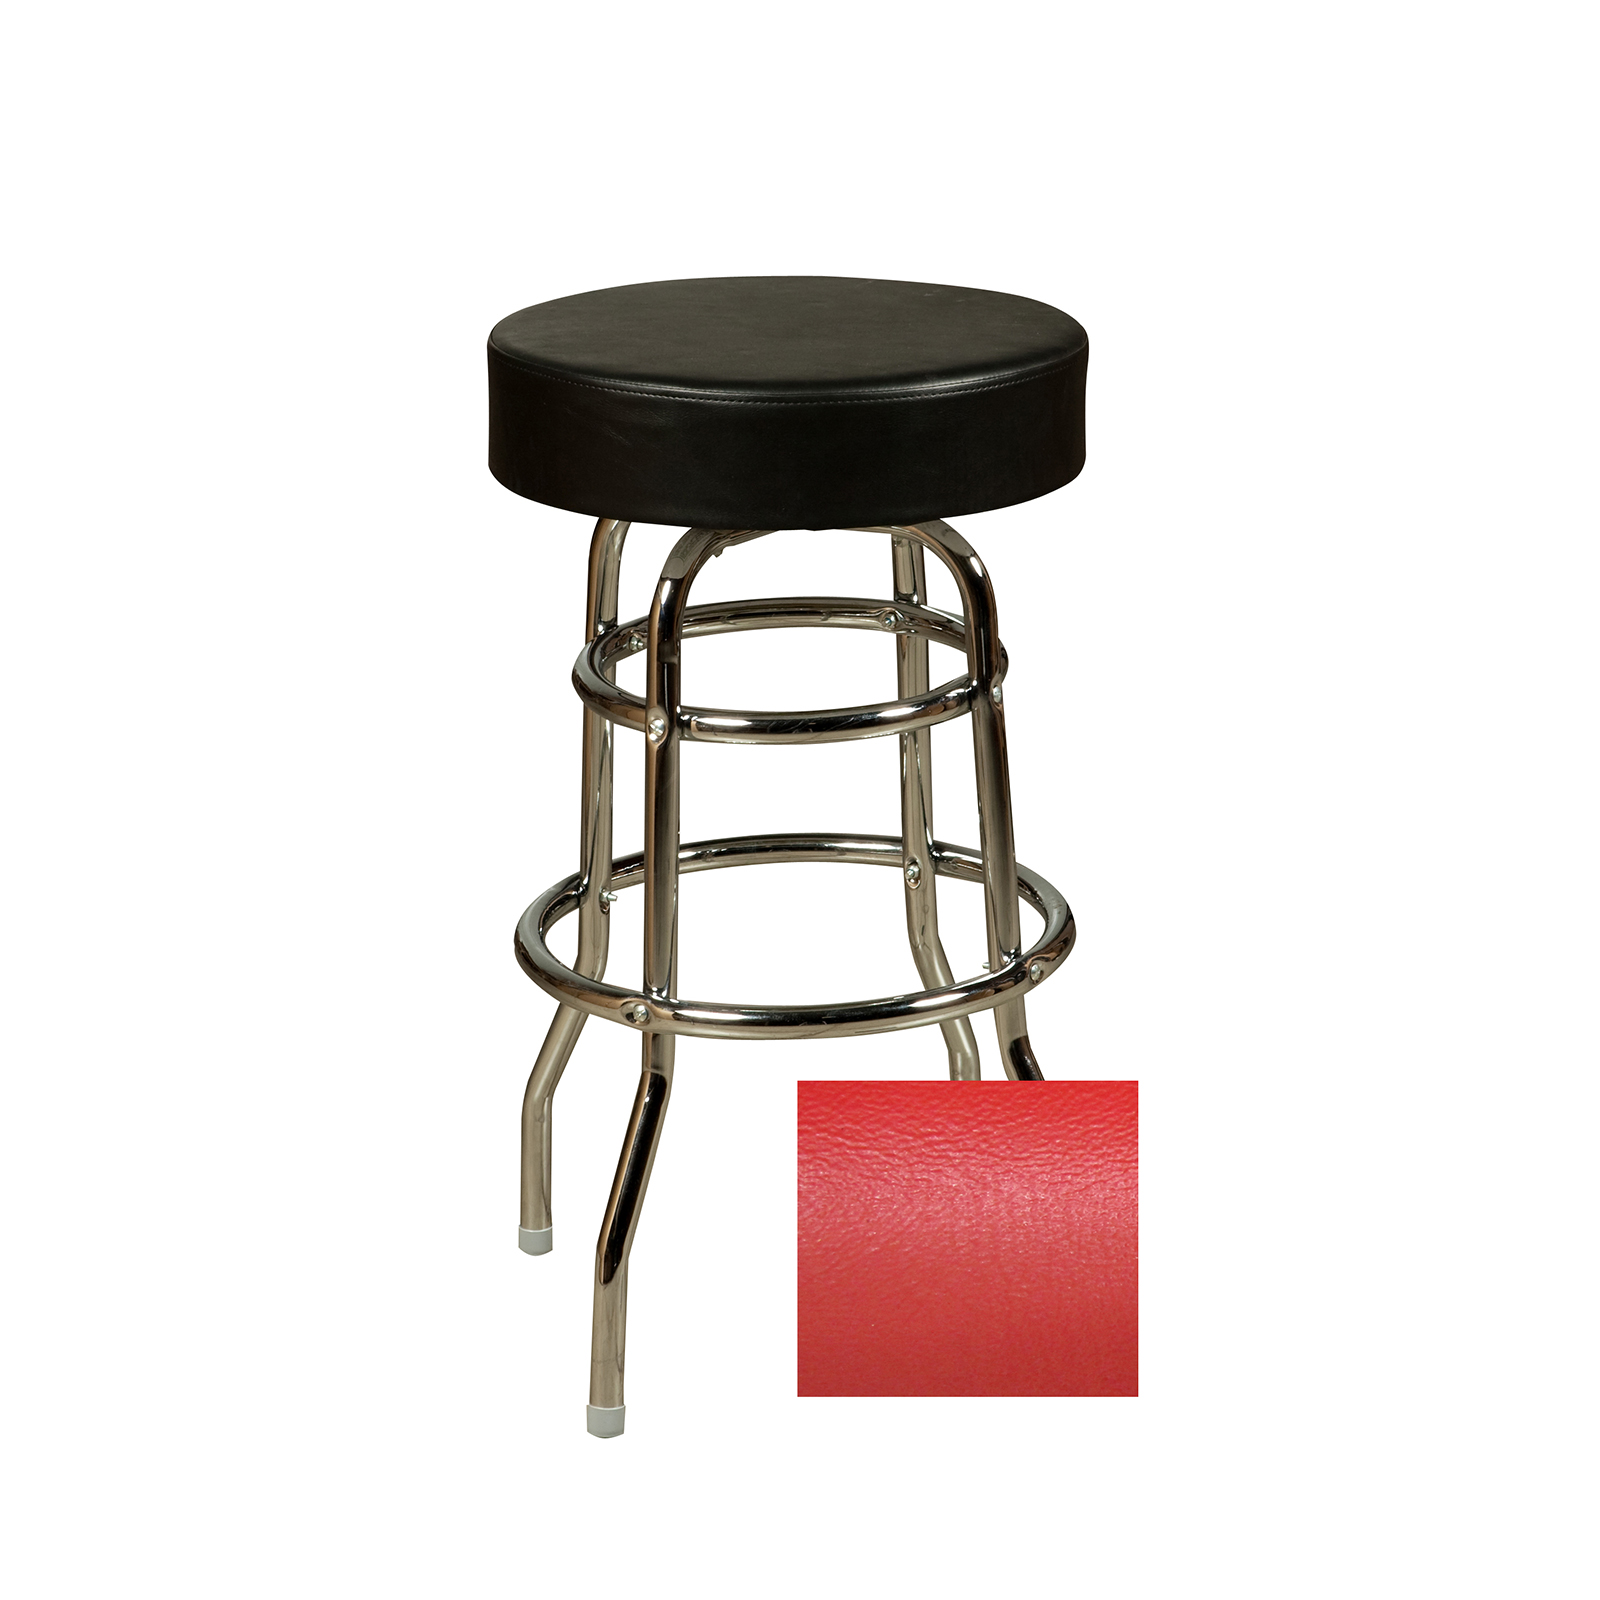 Oak Street SL3129-RED bar stool, swivel, indoor